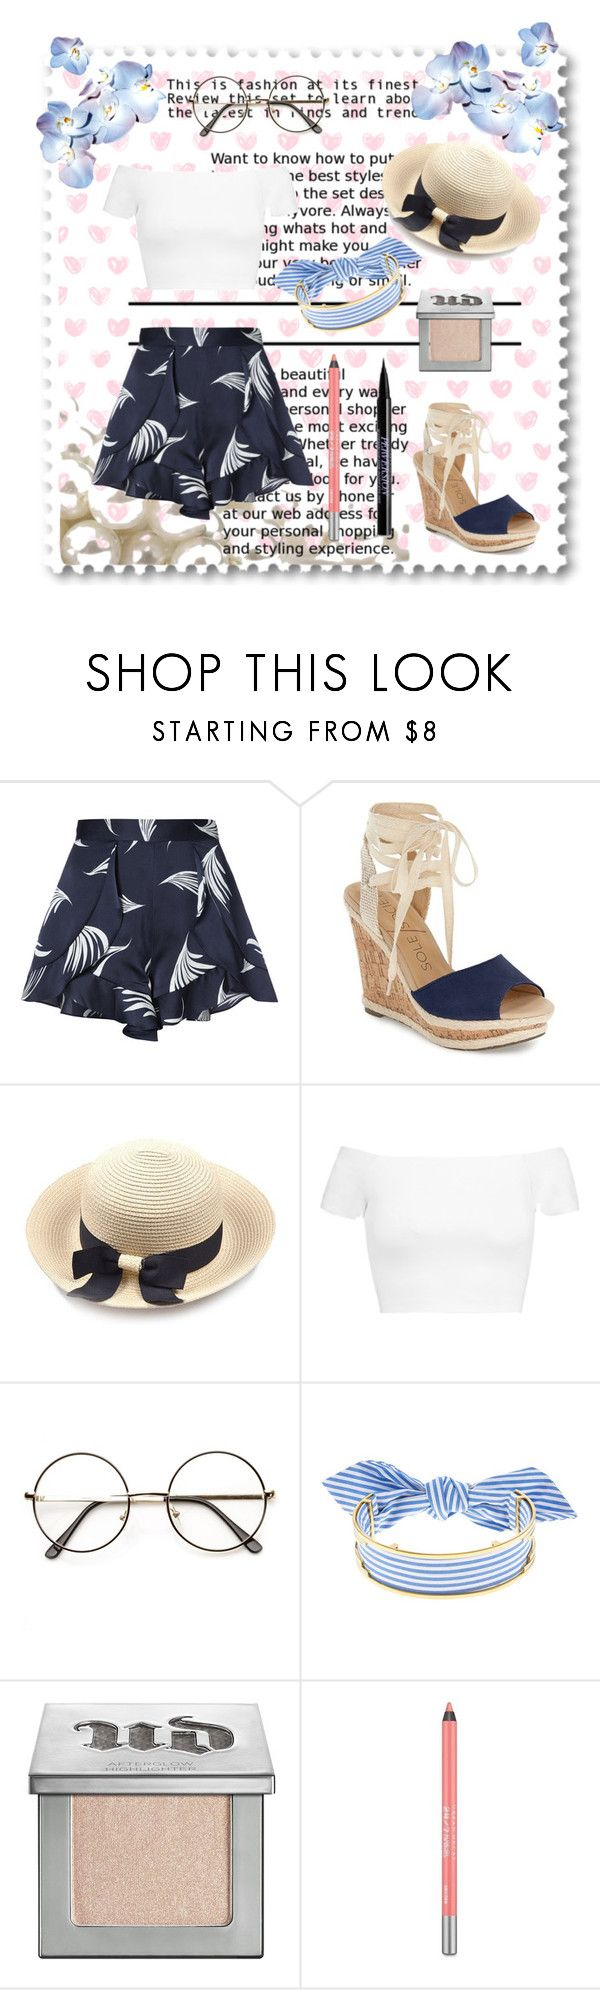 """""""Summer time"""" by spookie1 ❤ liked on Polyvore featuring C/MEO COLLECTIVE, Sole Society, Alice + Olivia, Monica Sordo and Urban Decay"""